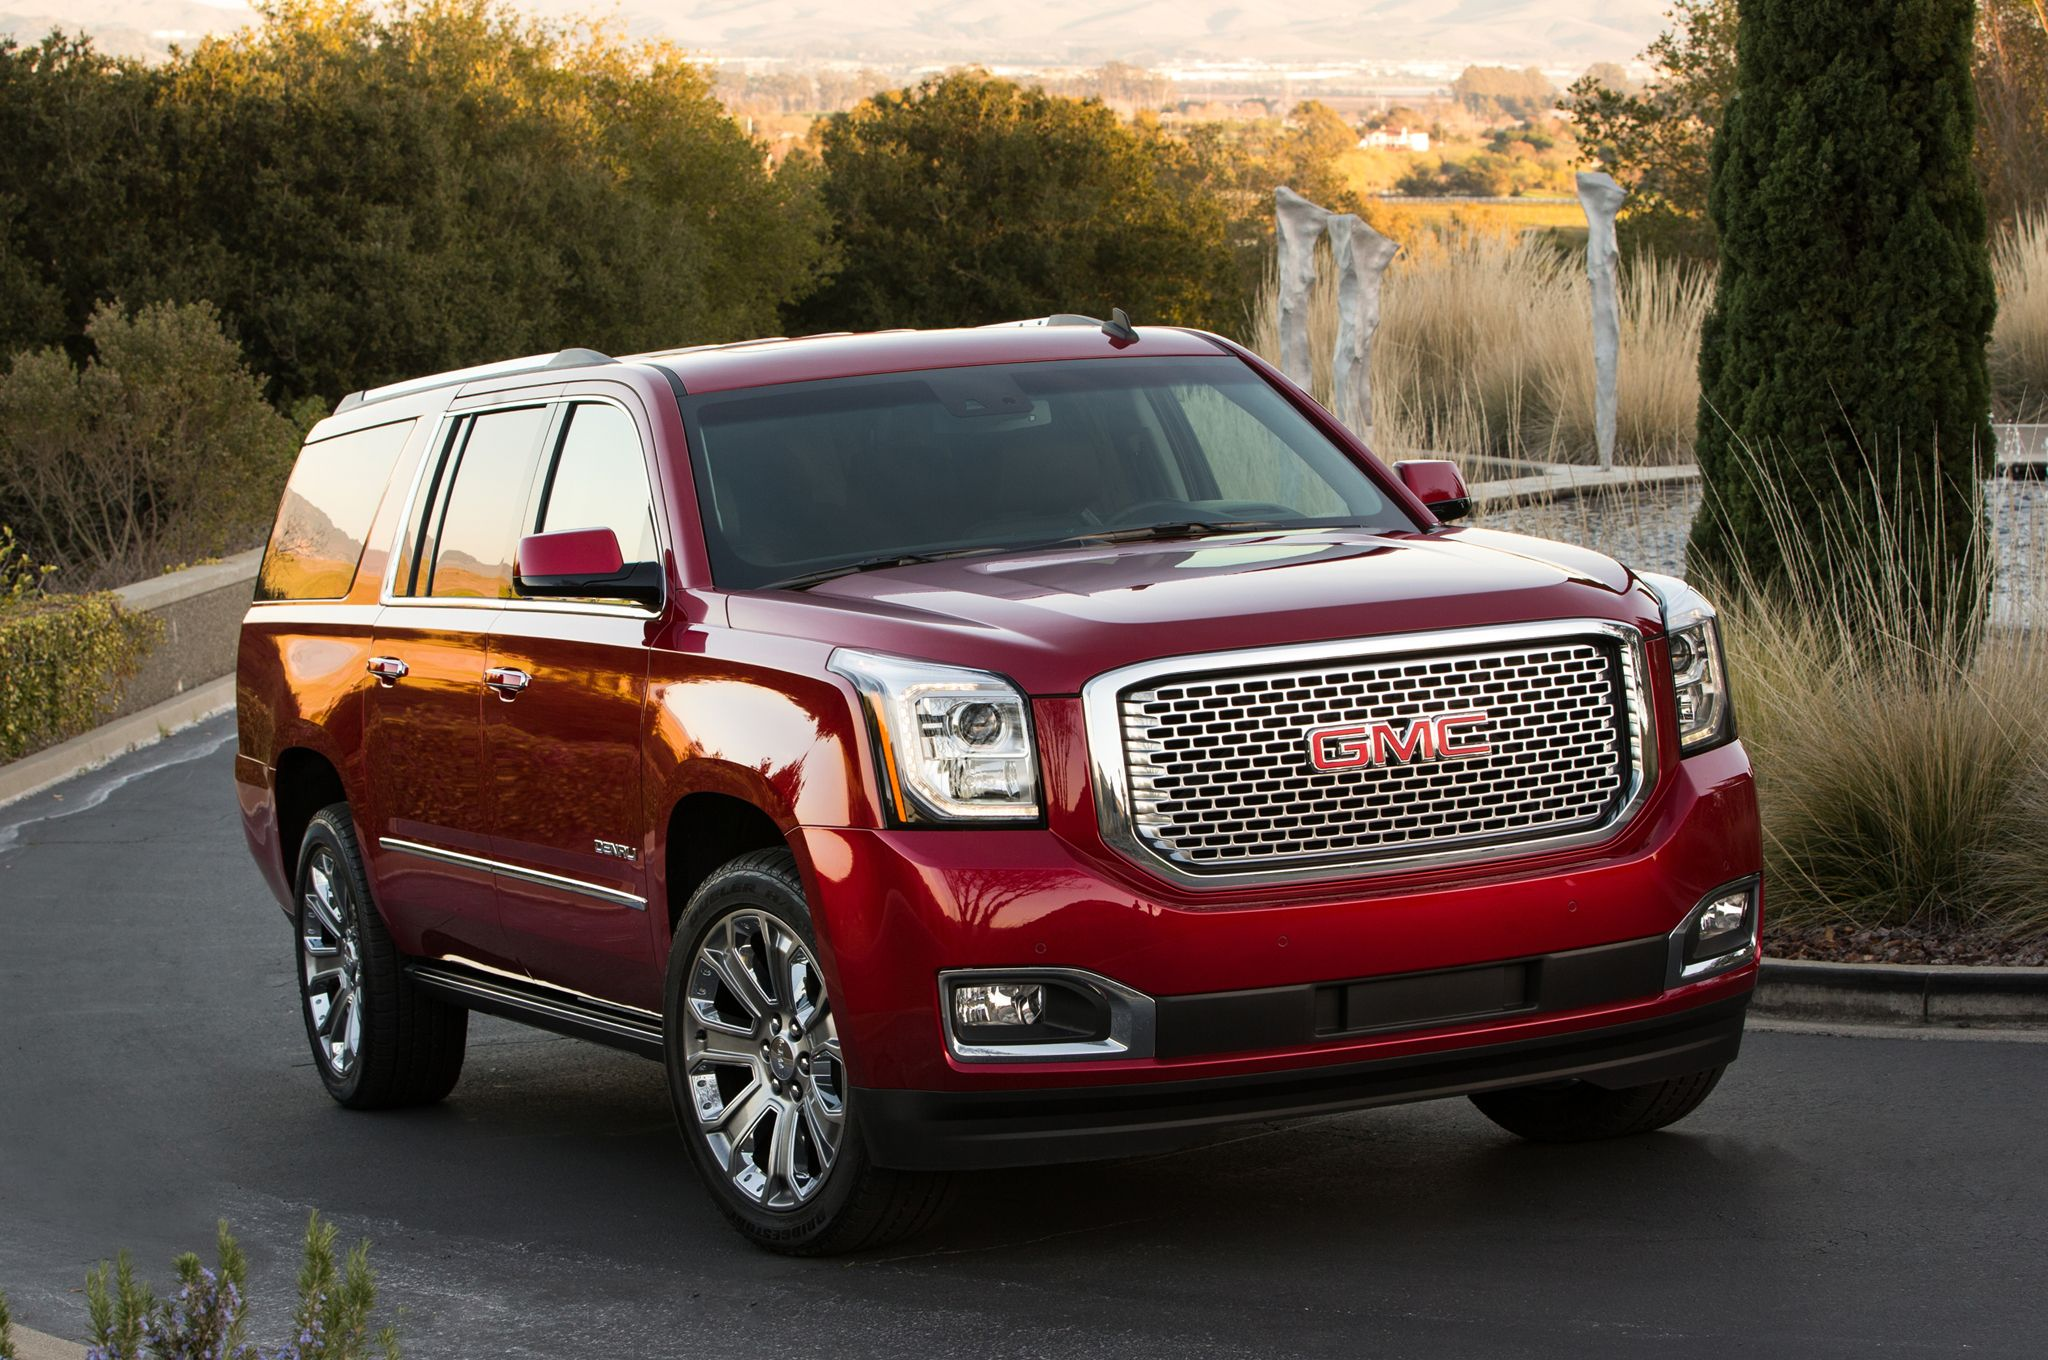 2015 gmc yukon xl denali front three quarters 2 048—1 360 pixels